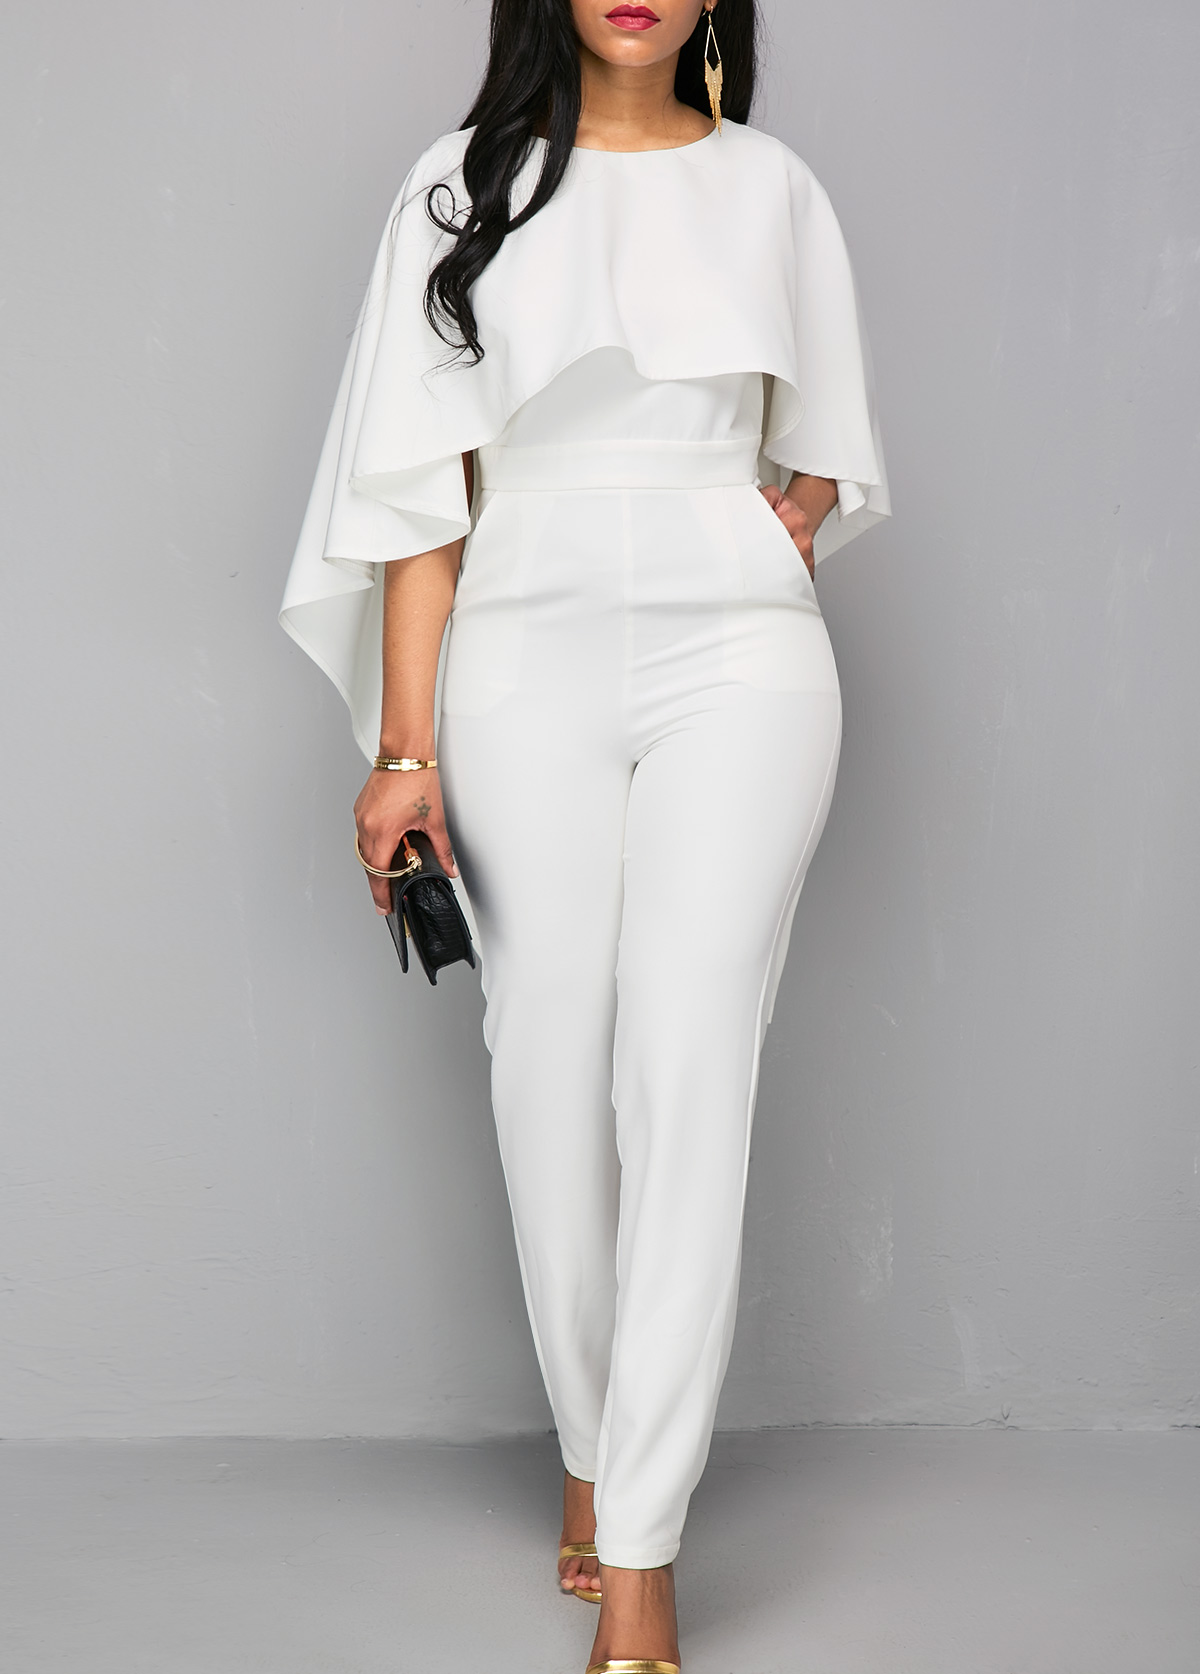 White Jumpsuits Rompers For Women Online Shop Free Shipping